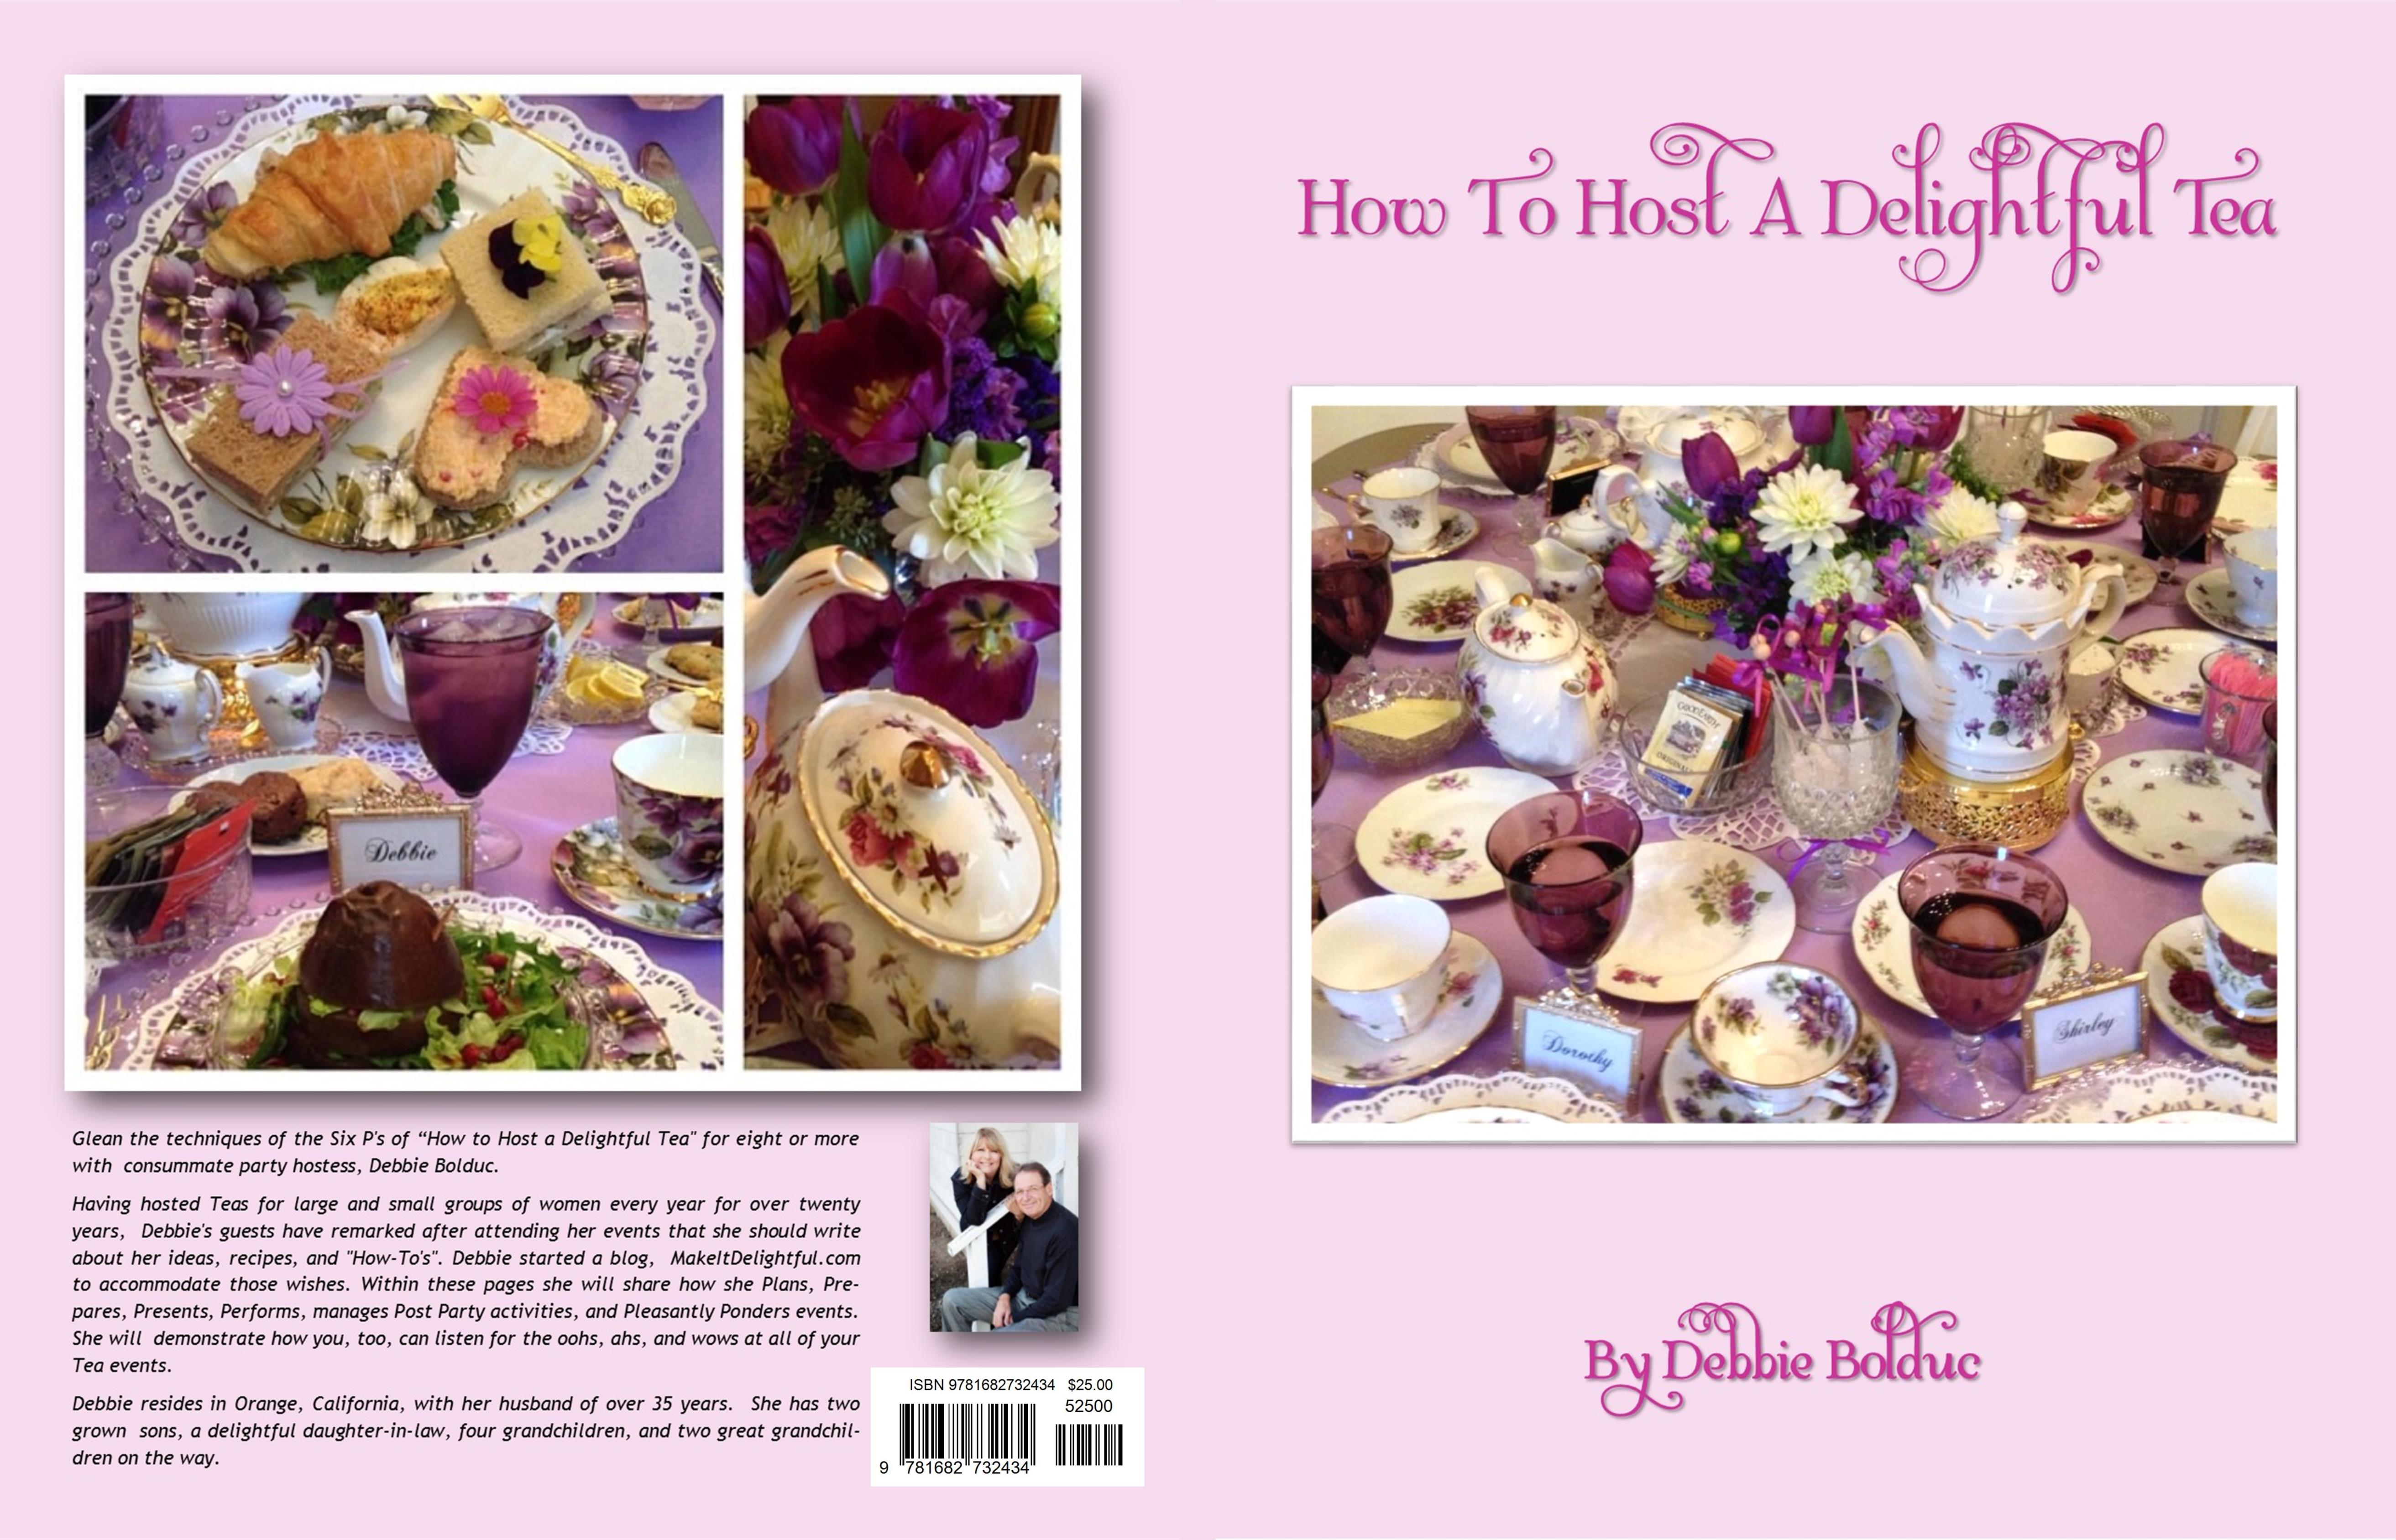 How To Host A Delightful Tea cover image